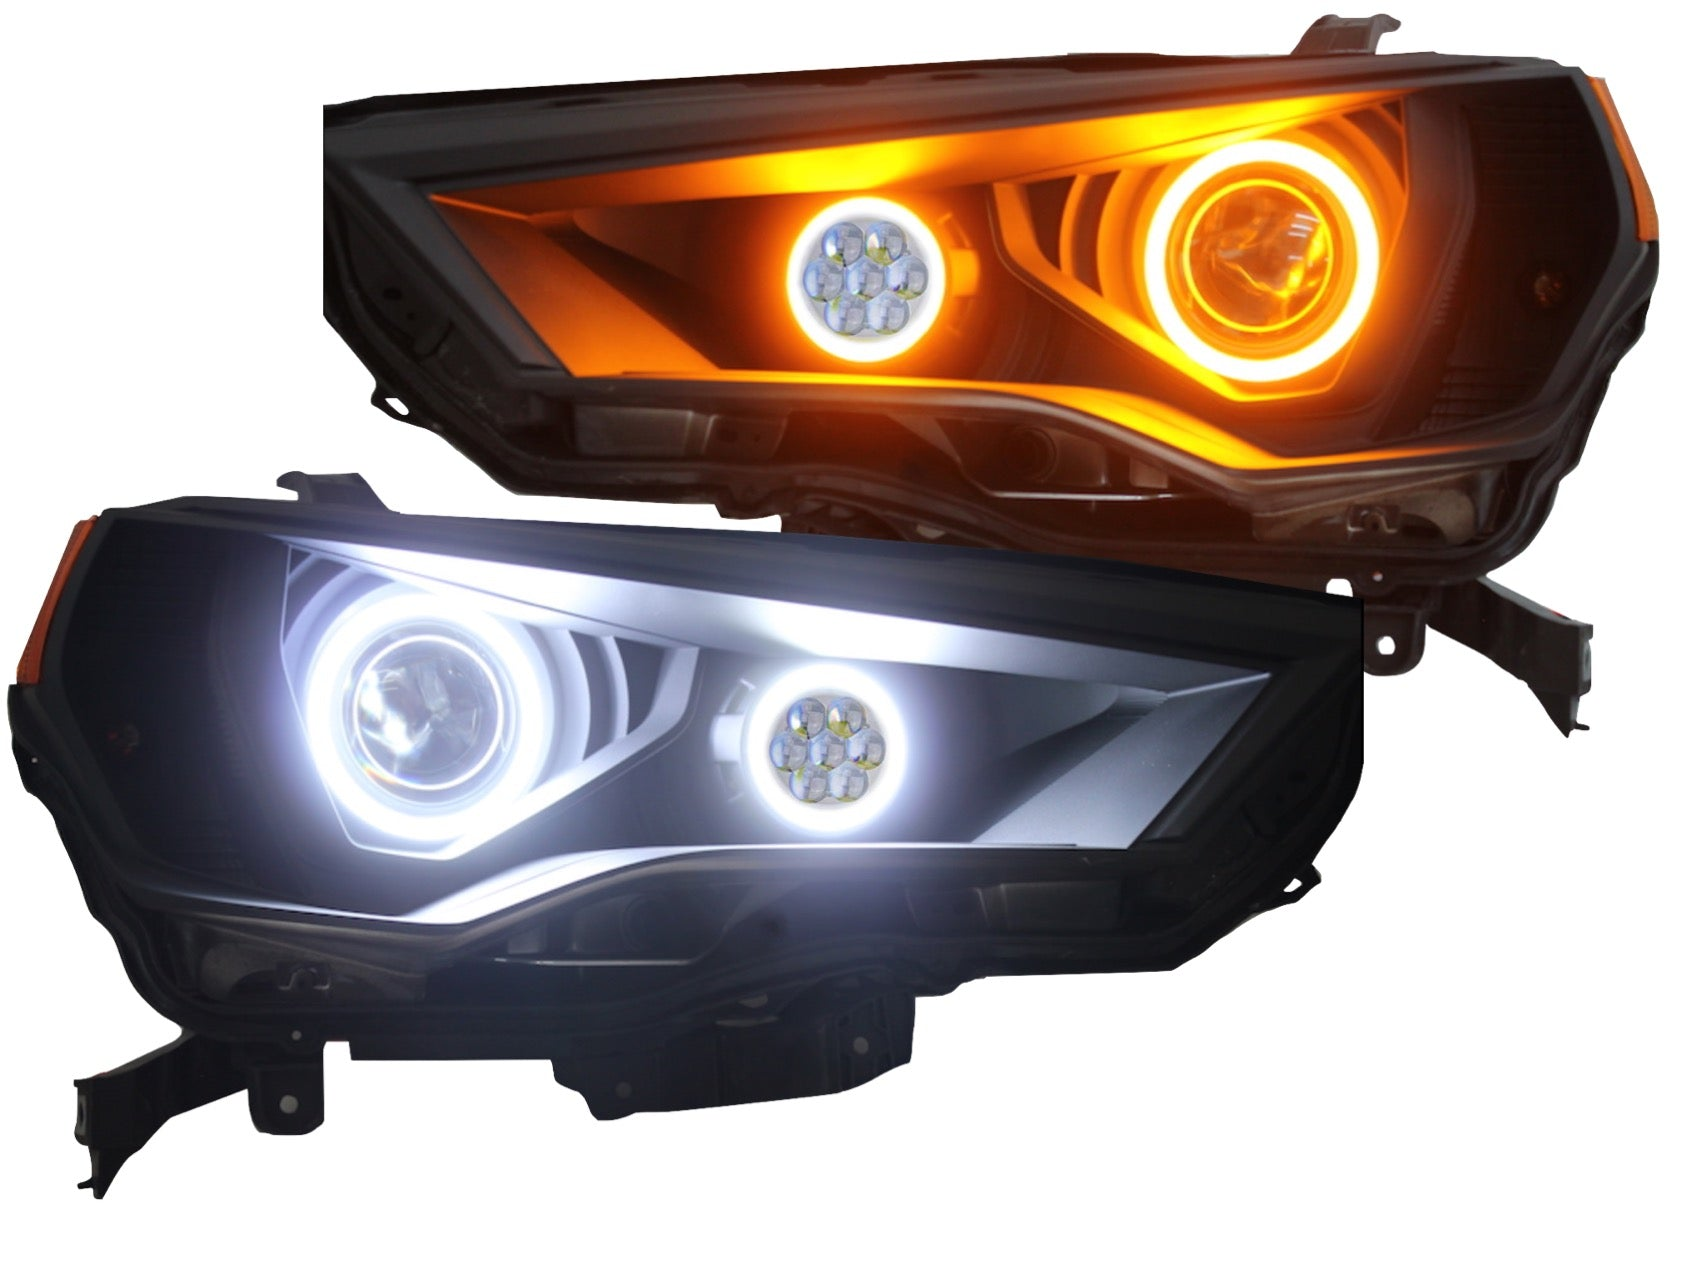 HEADLIGHTS BLACK CUSTOM LED HALO PROJECTOR - Toyota 4Runner 5th Gen 2014-2020 - 4x4 Runners